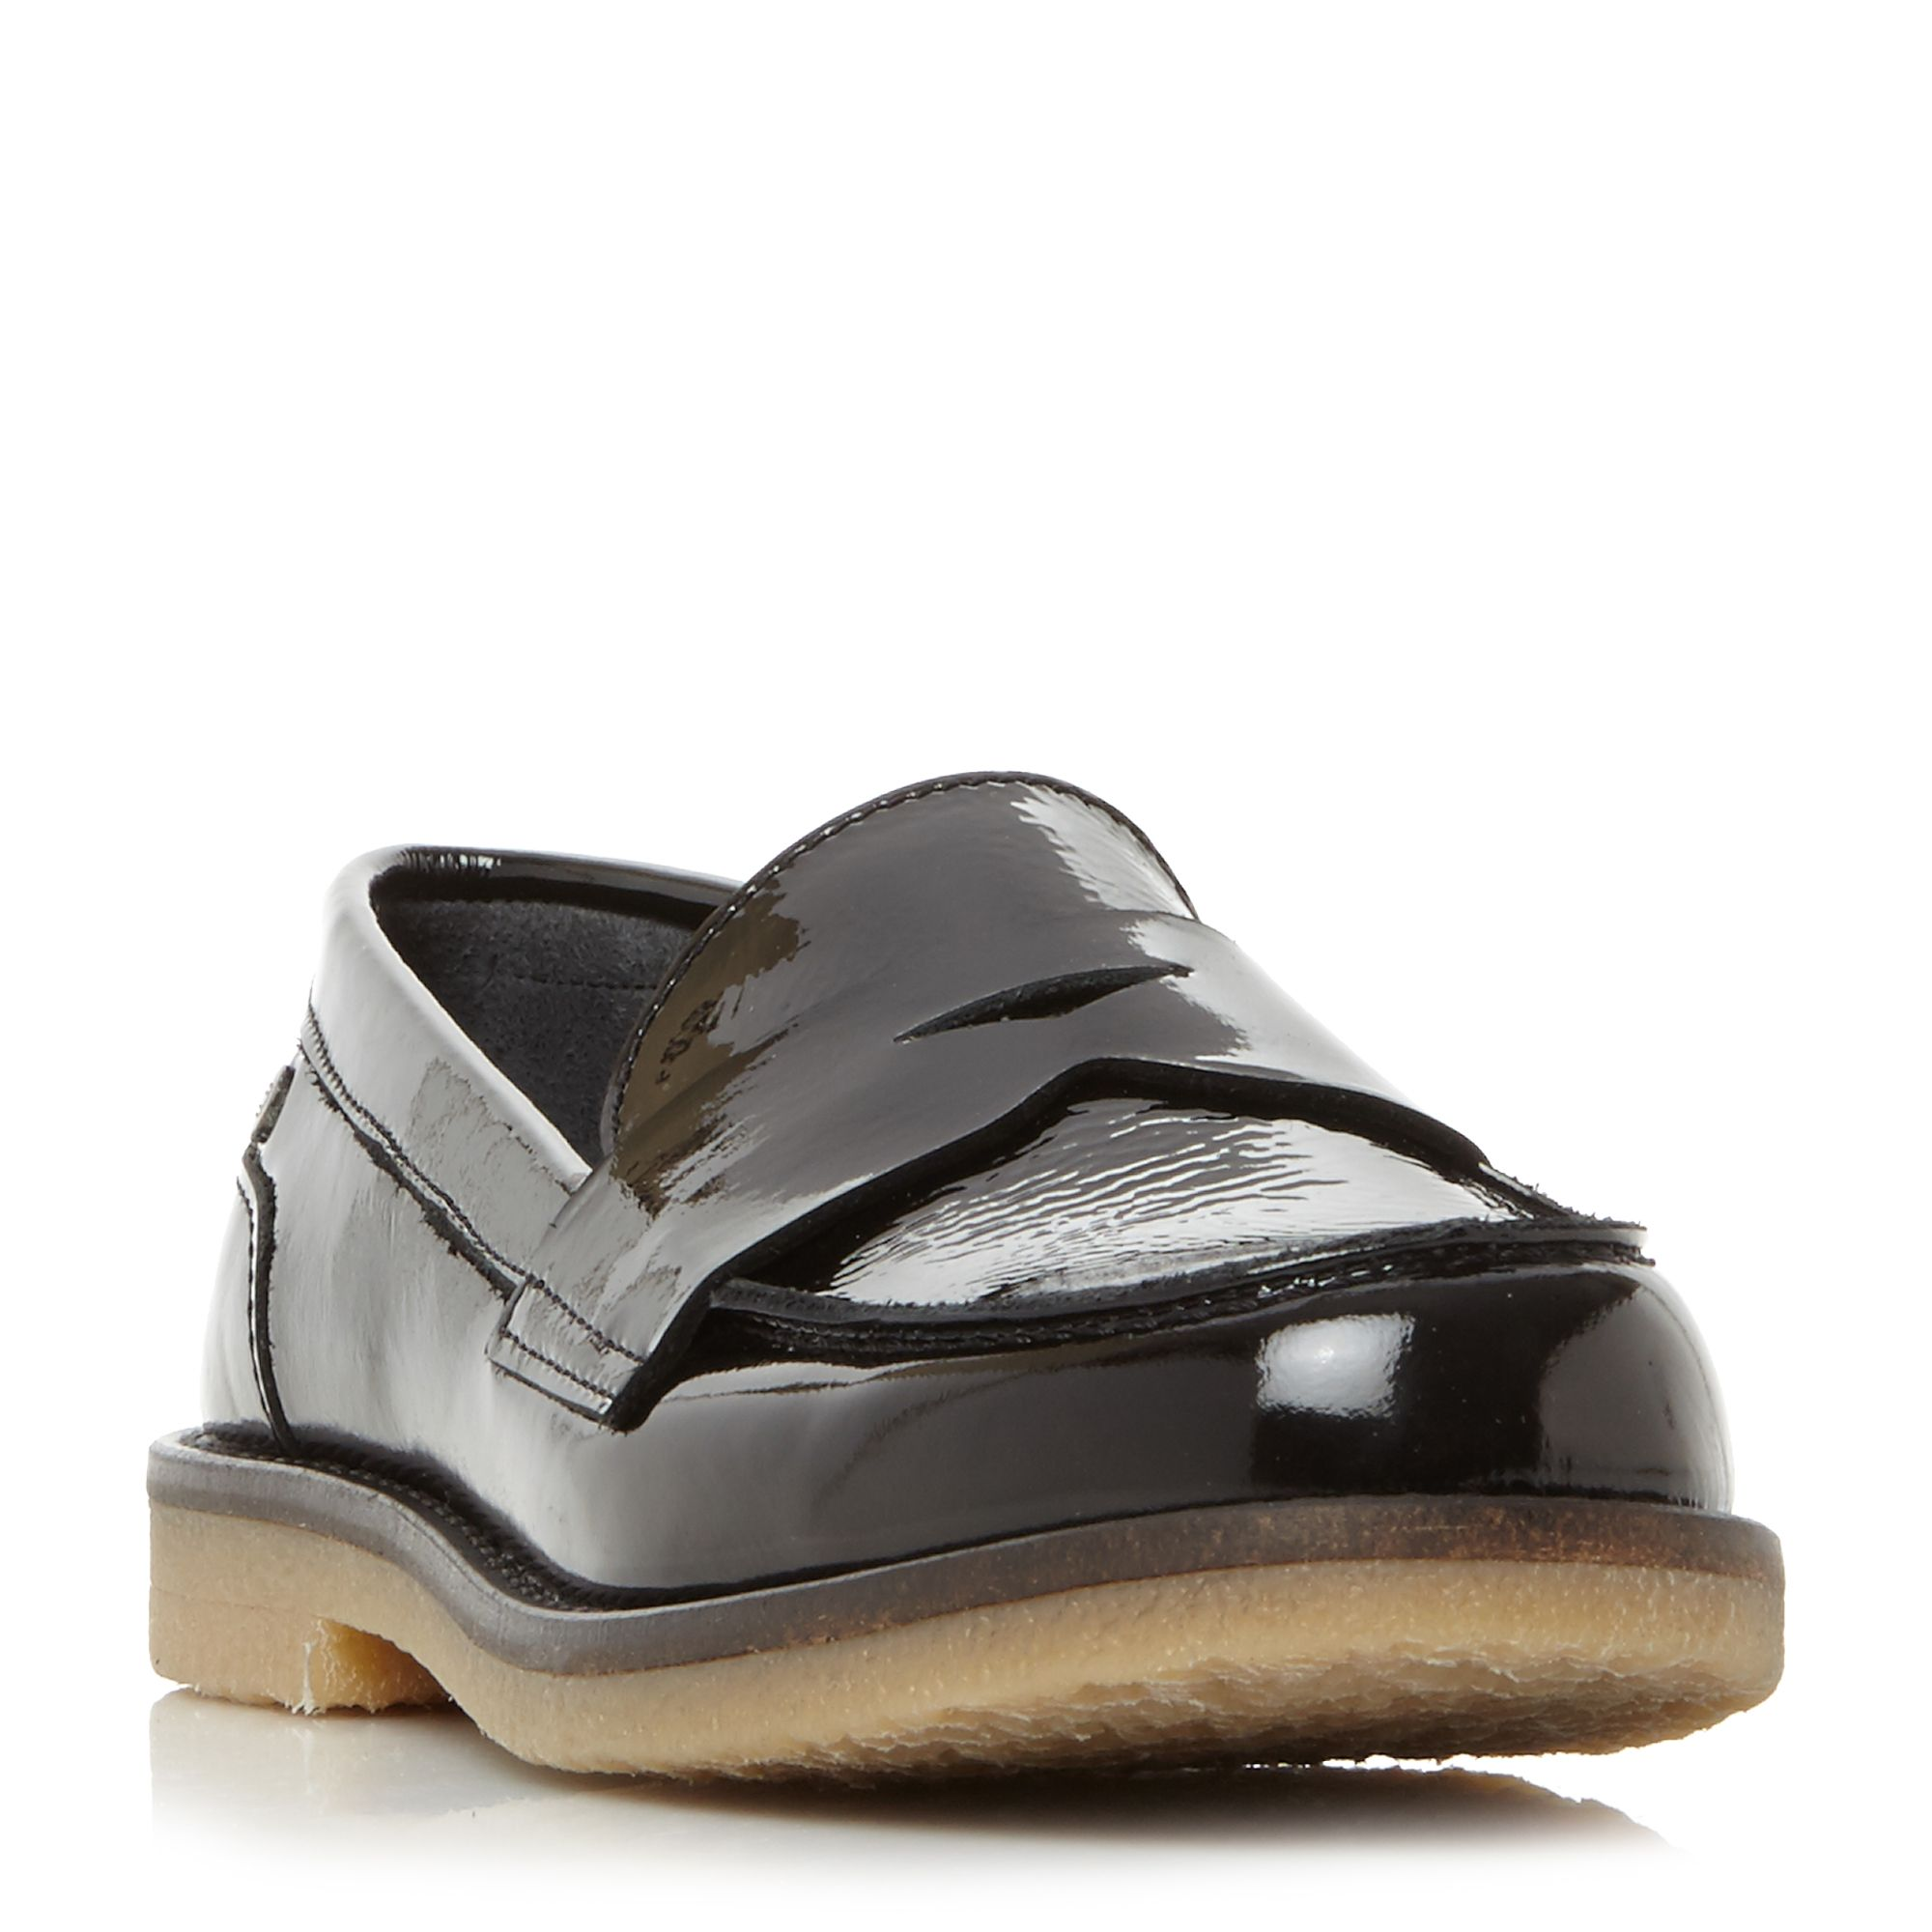 Mathilde 1a1 Patent Penny Loafers, Black Patent